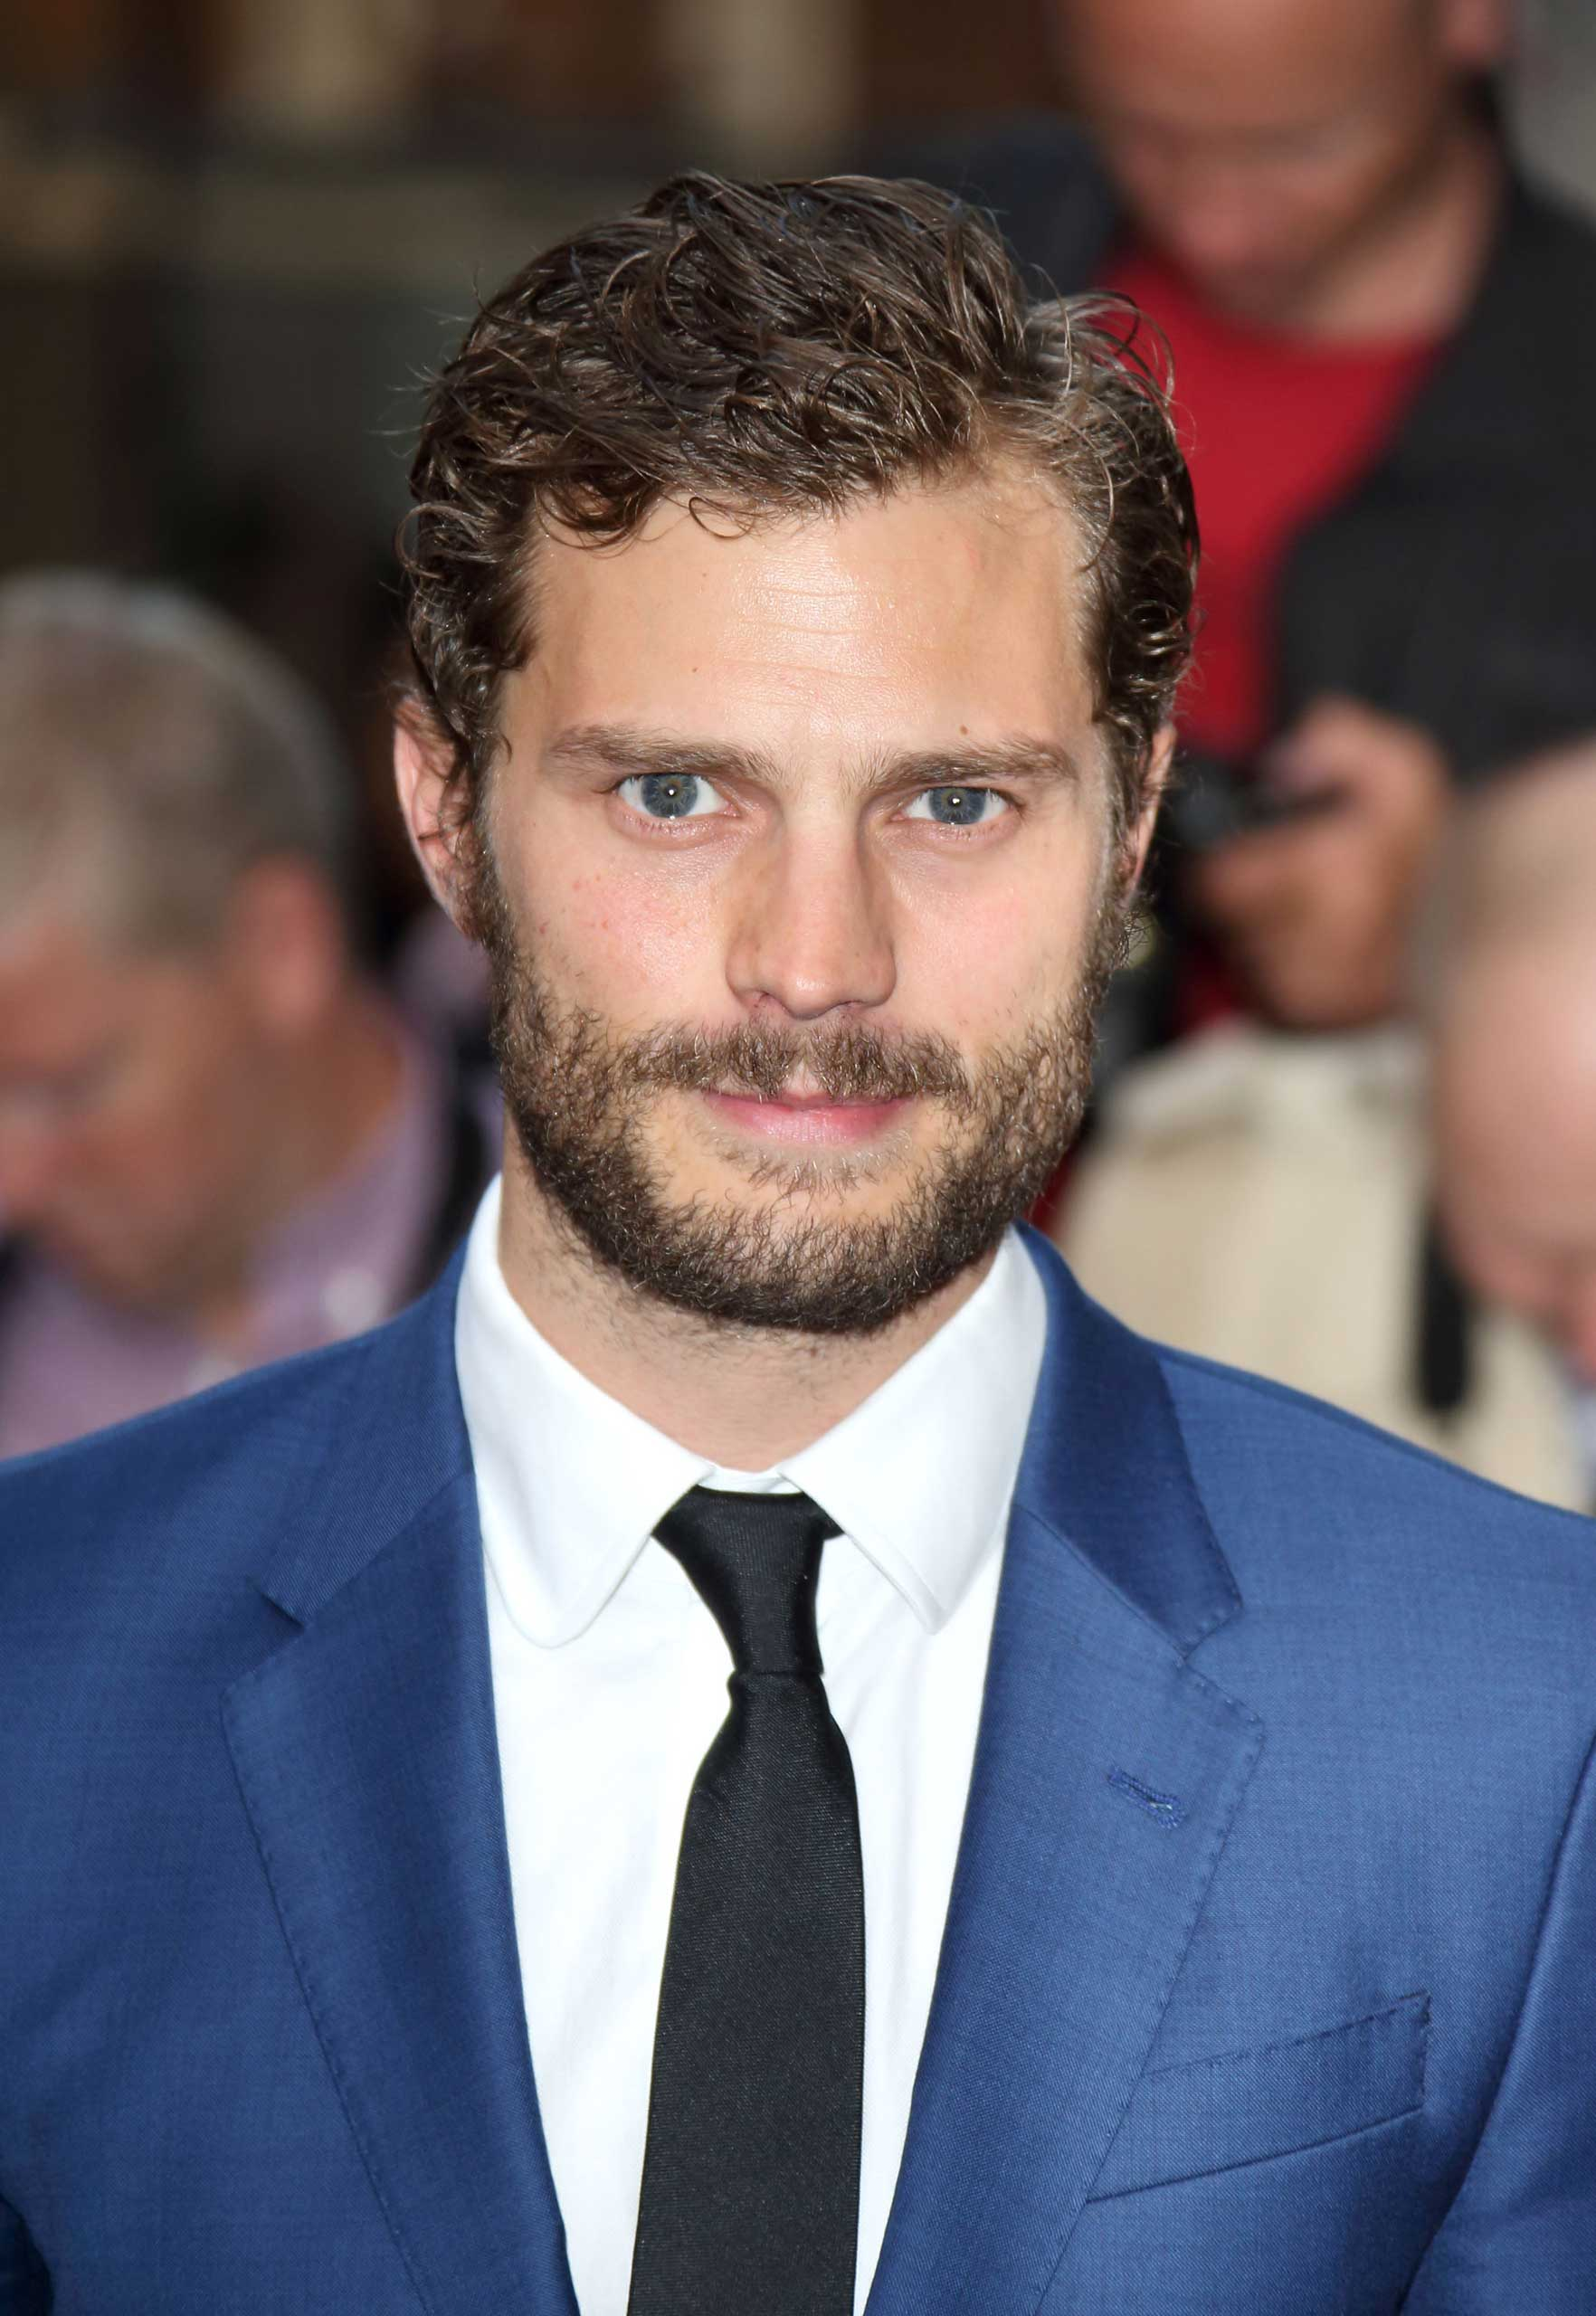 Jamie Dornan attends the GQ Men of the Year awards at The Royal Opera House on Sept. 2, 2014 in London.